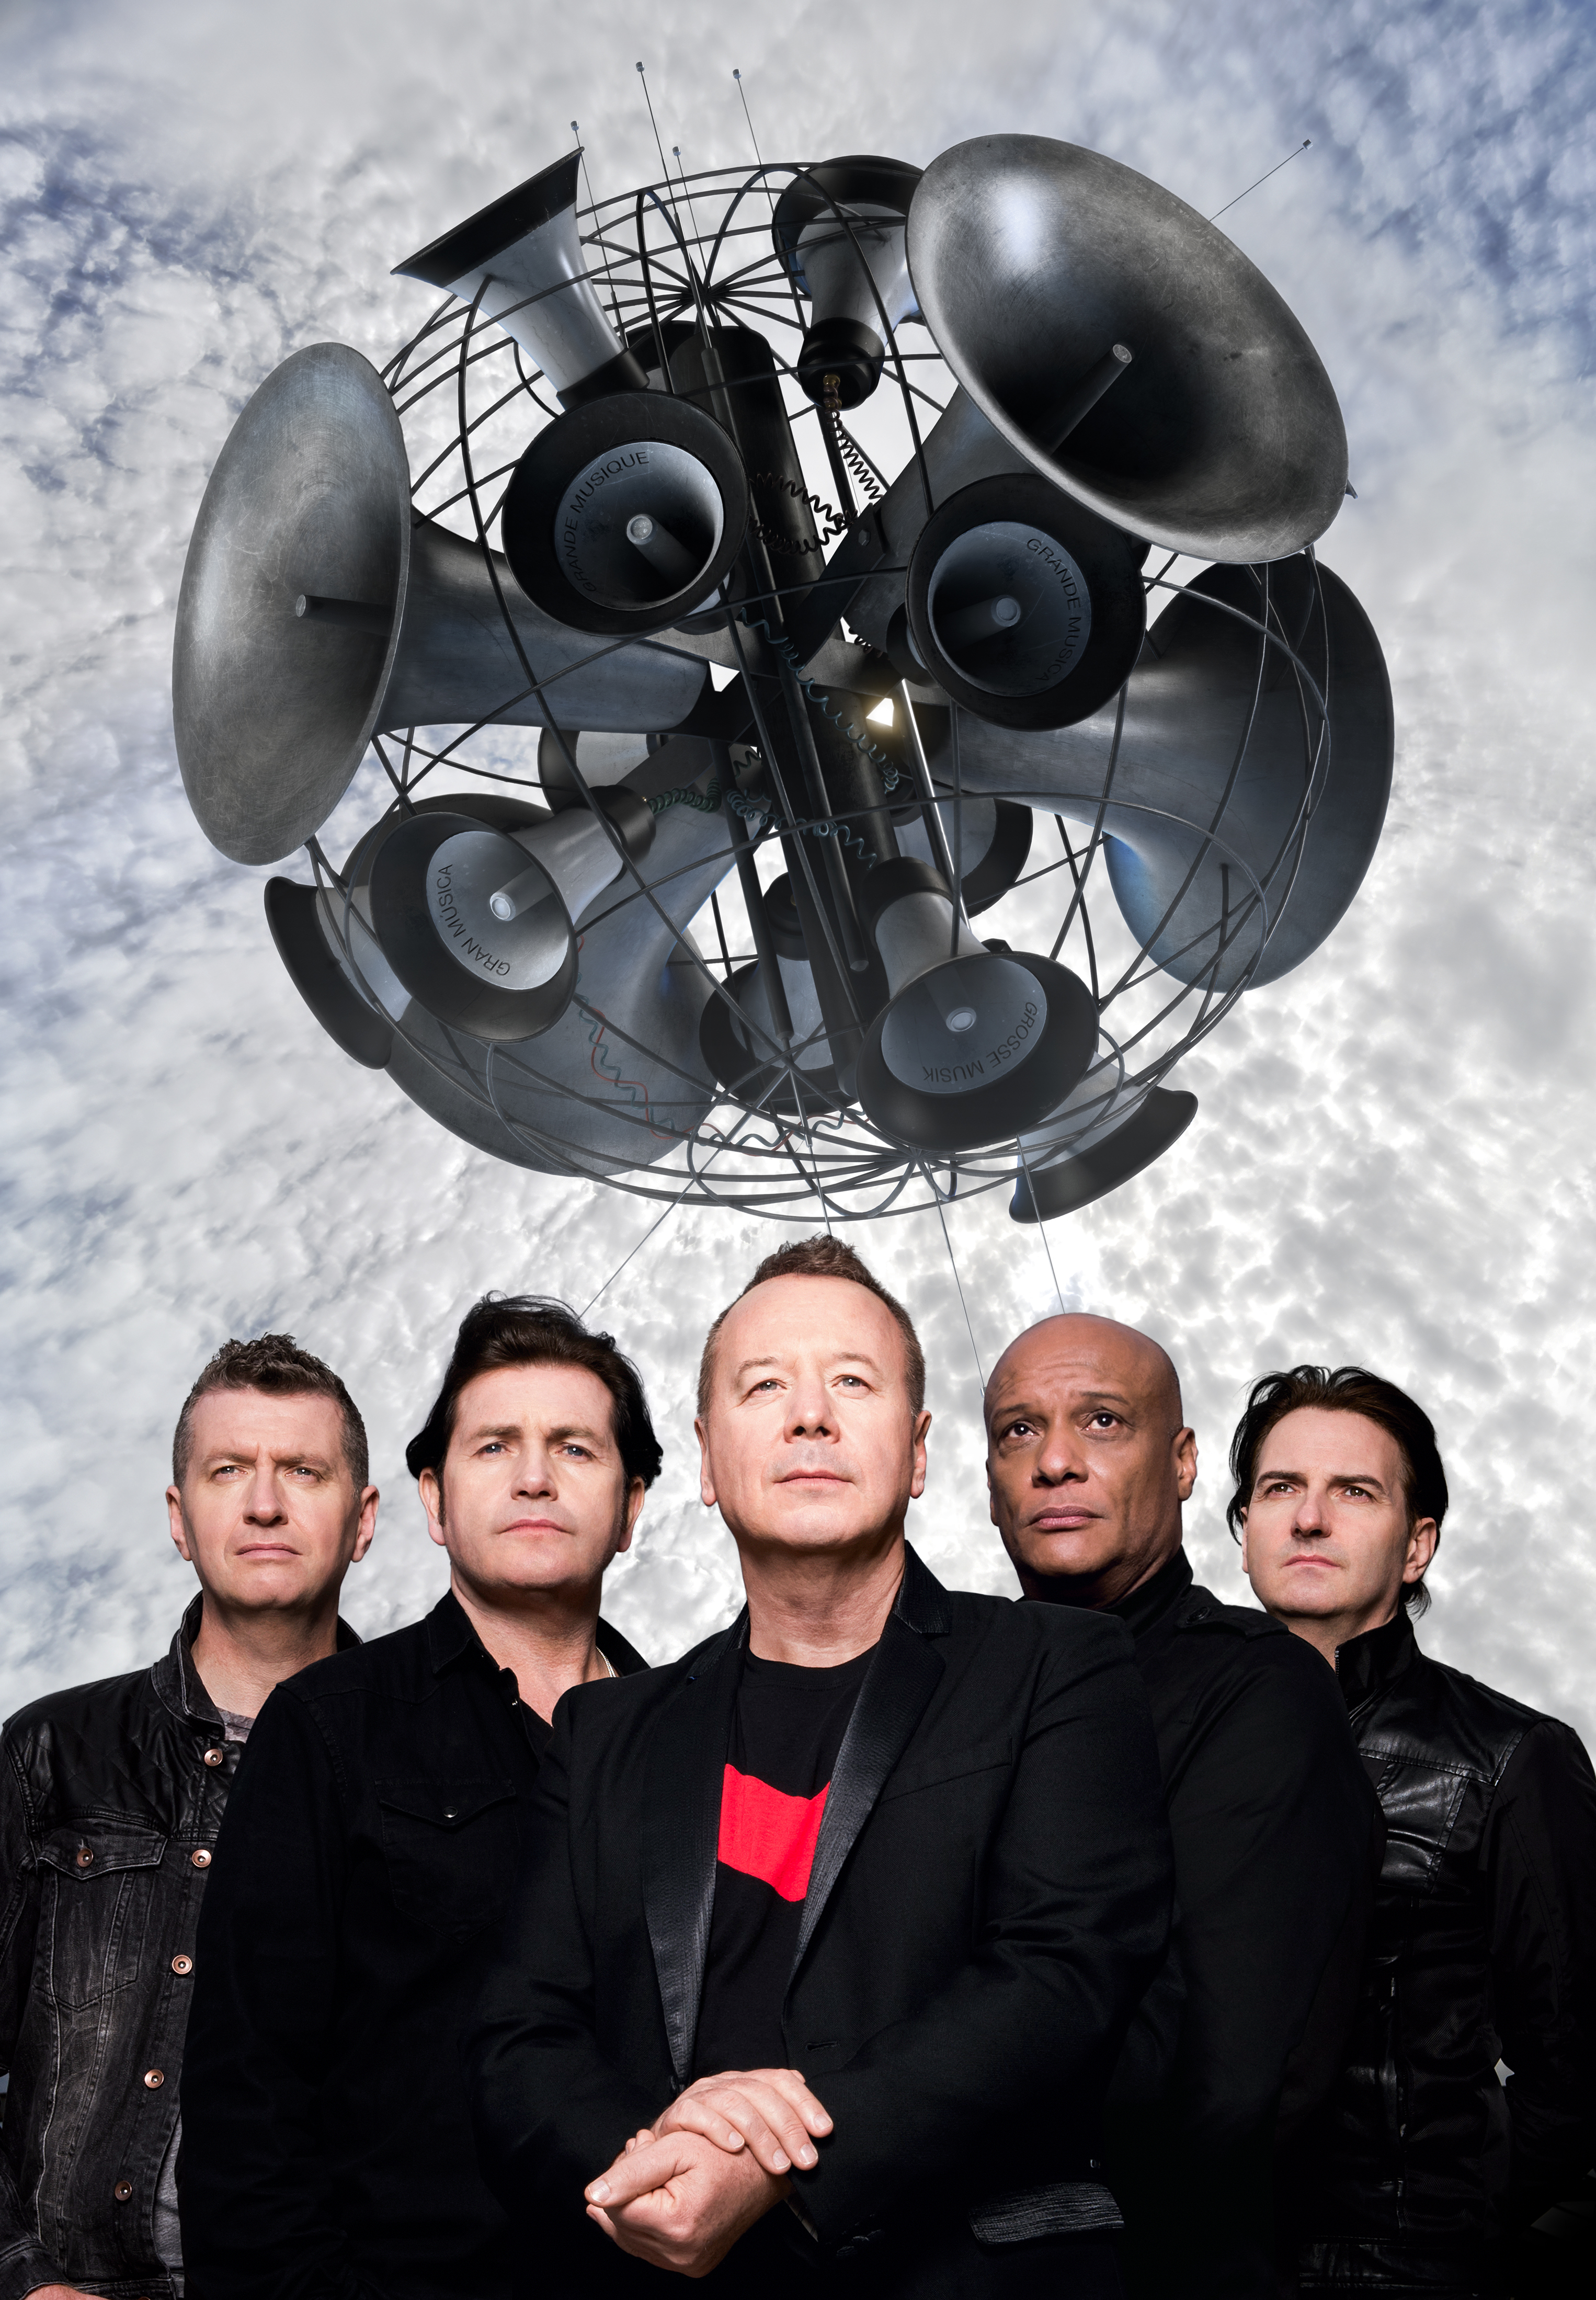 What genre of music is the group Simple Minds?